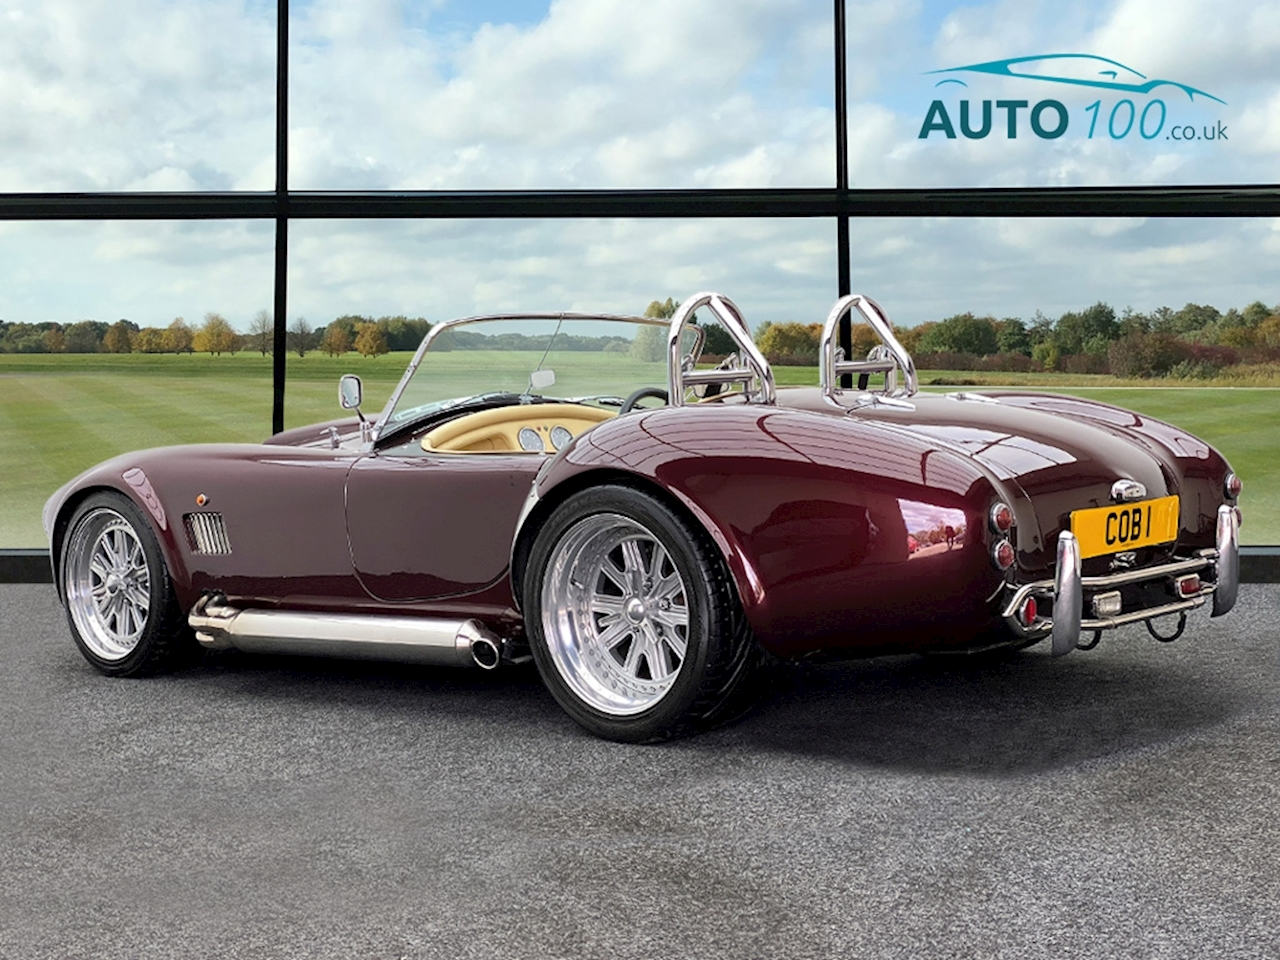 Cobra 6.3 2dr Convertible Manual Petrol